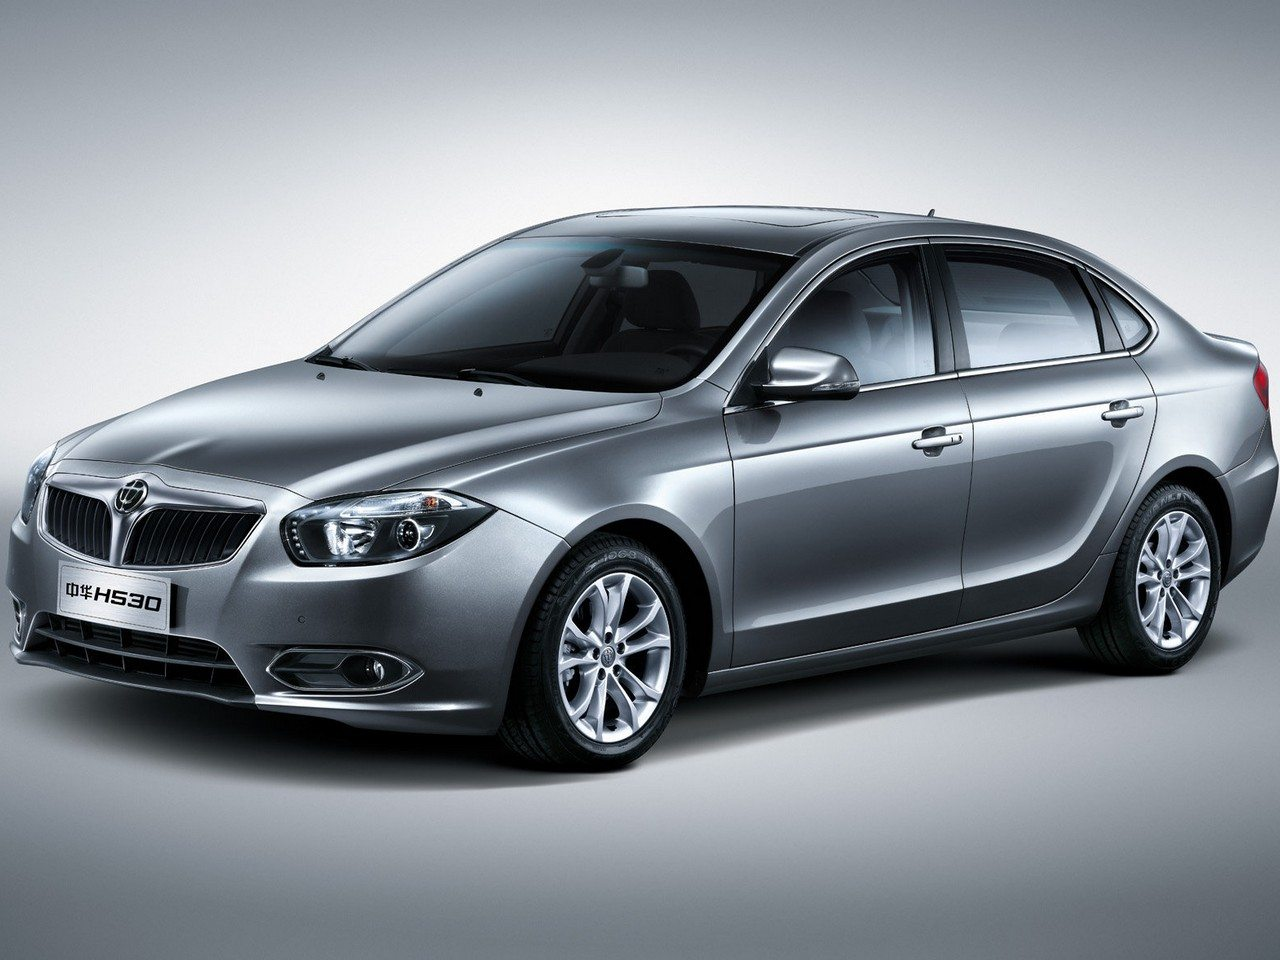 Car Brilliance H530: review, specifications and reviews 38